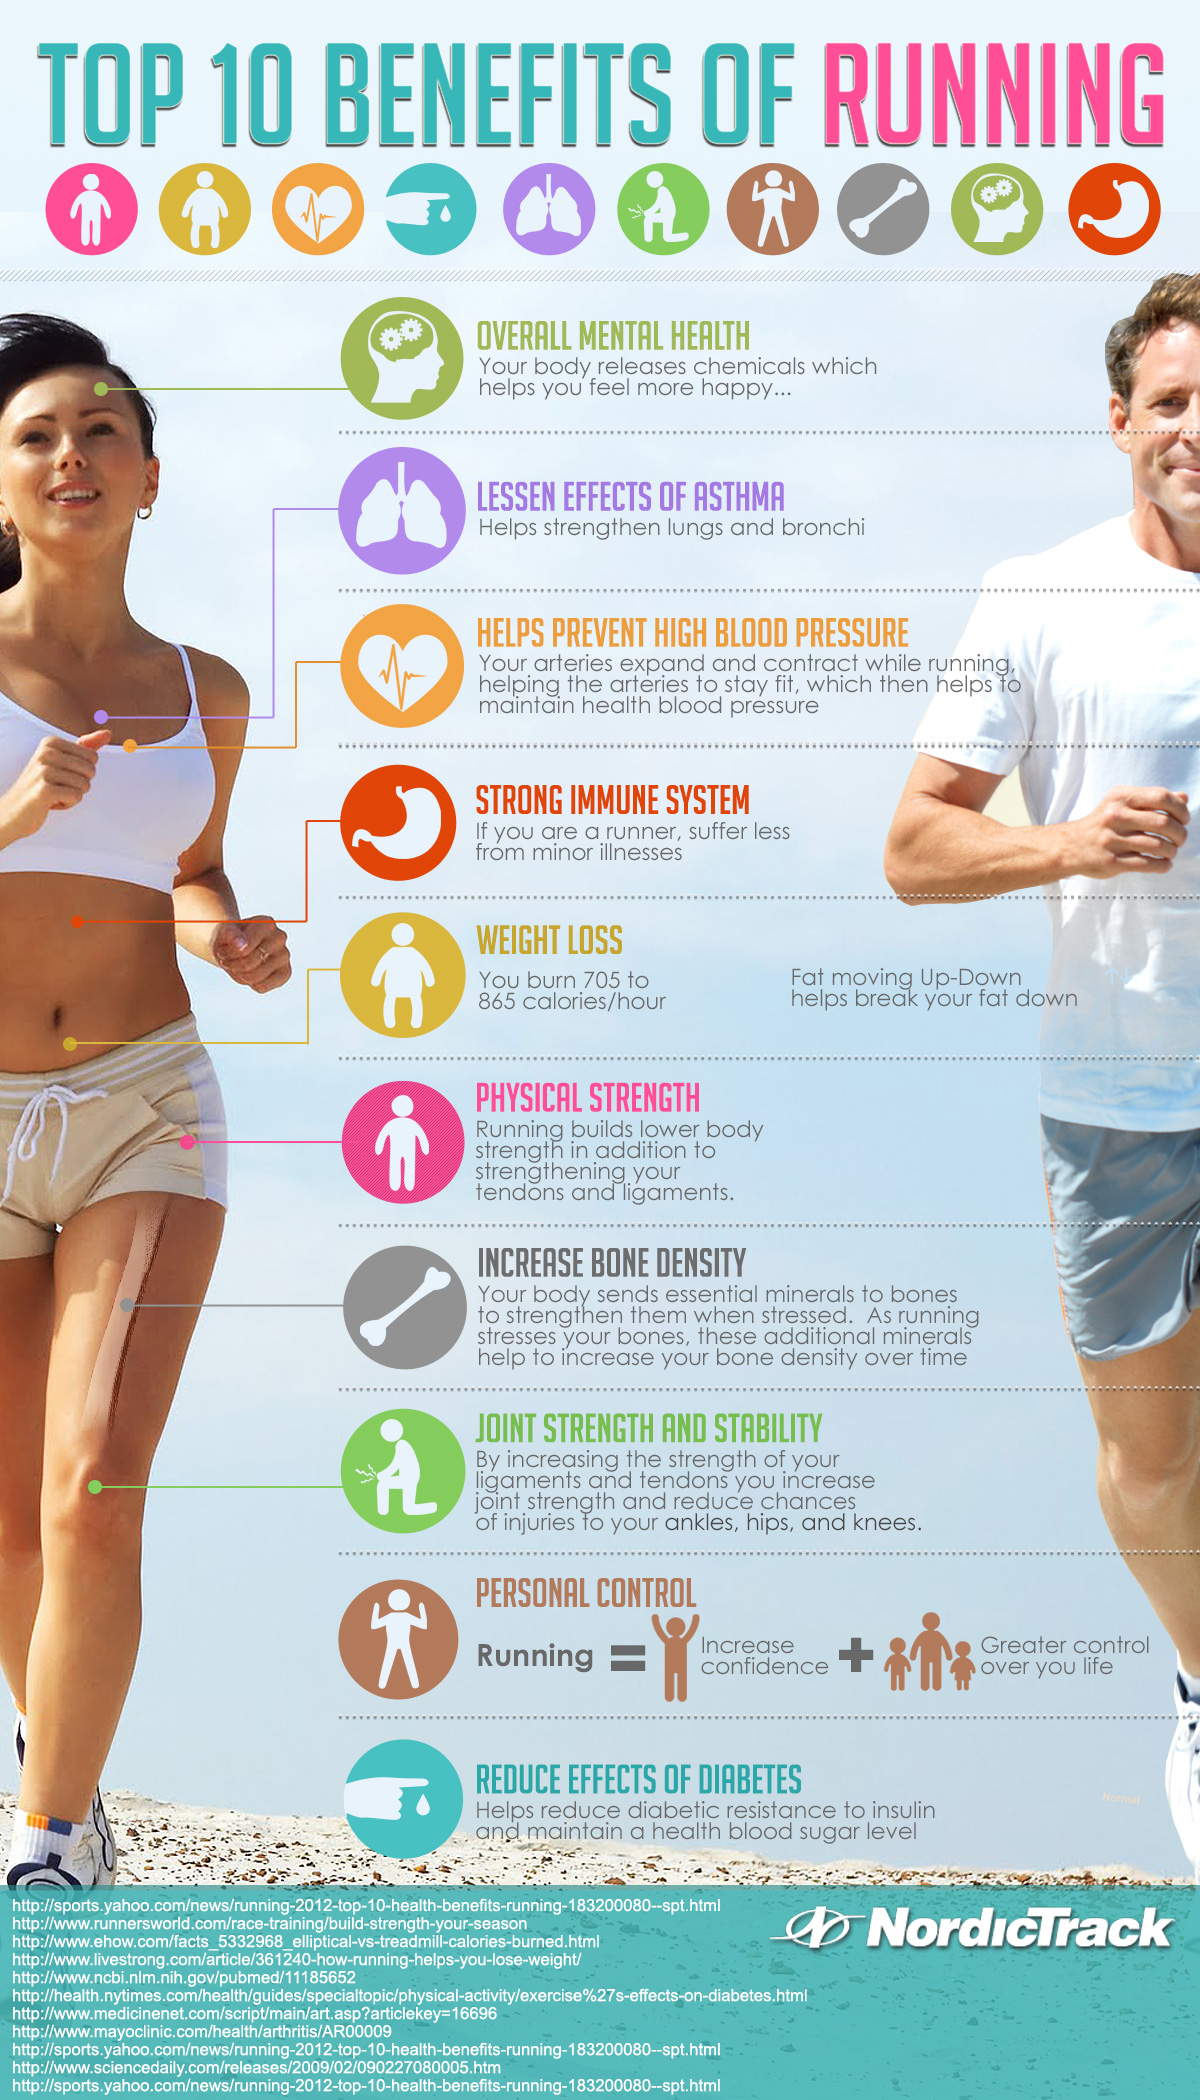 A list of medical benefits of running